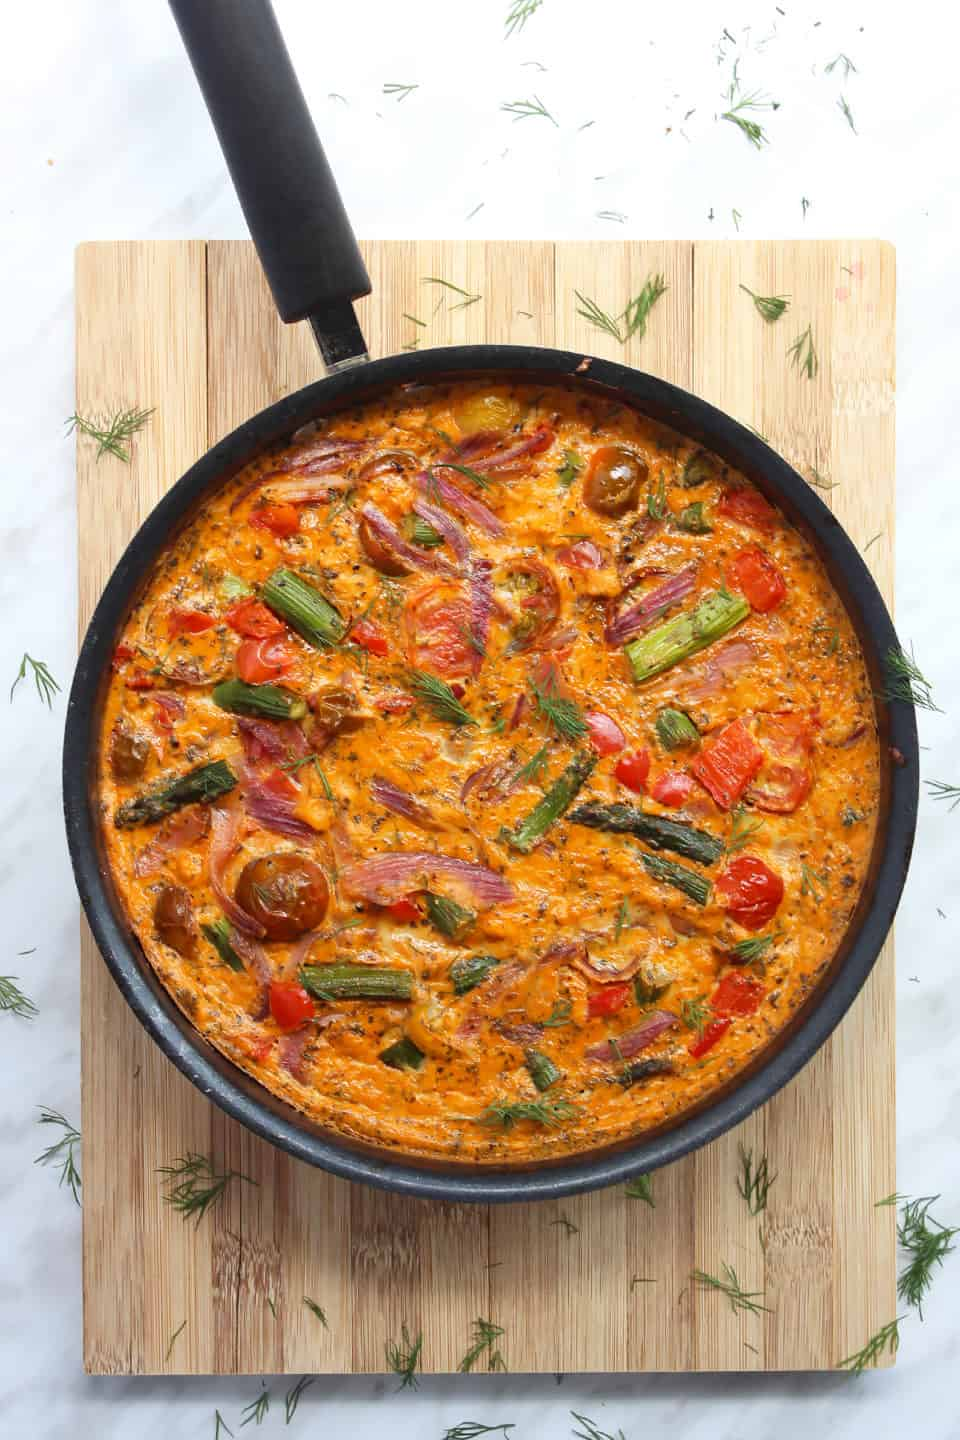 A oven baked frittata in a skillet on a wooden chopping board